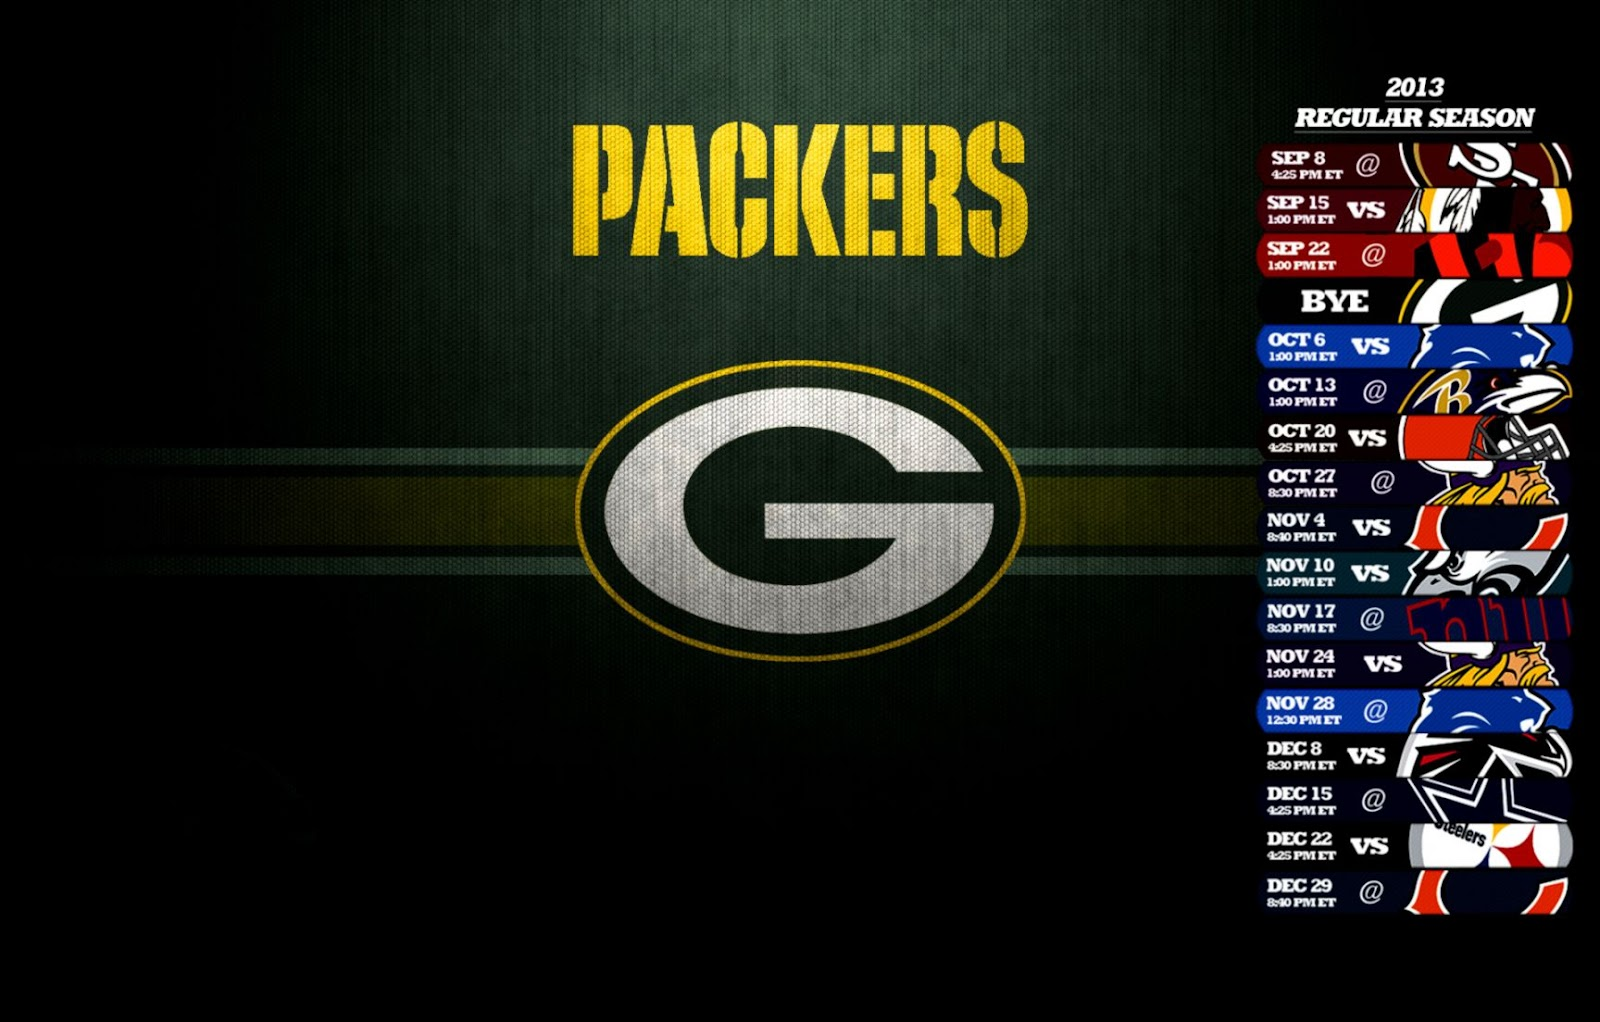 Green Bay Packers Schedule View Wallpapers